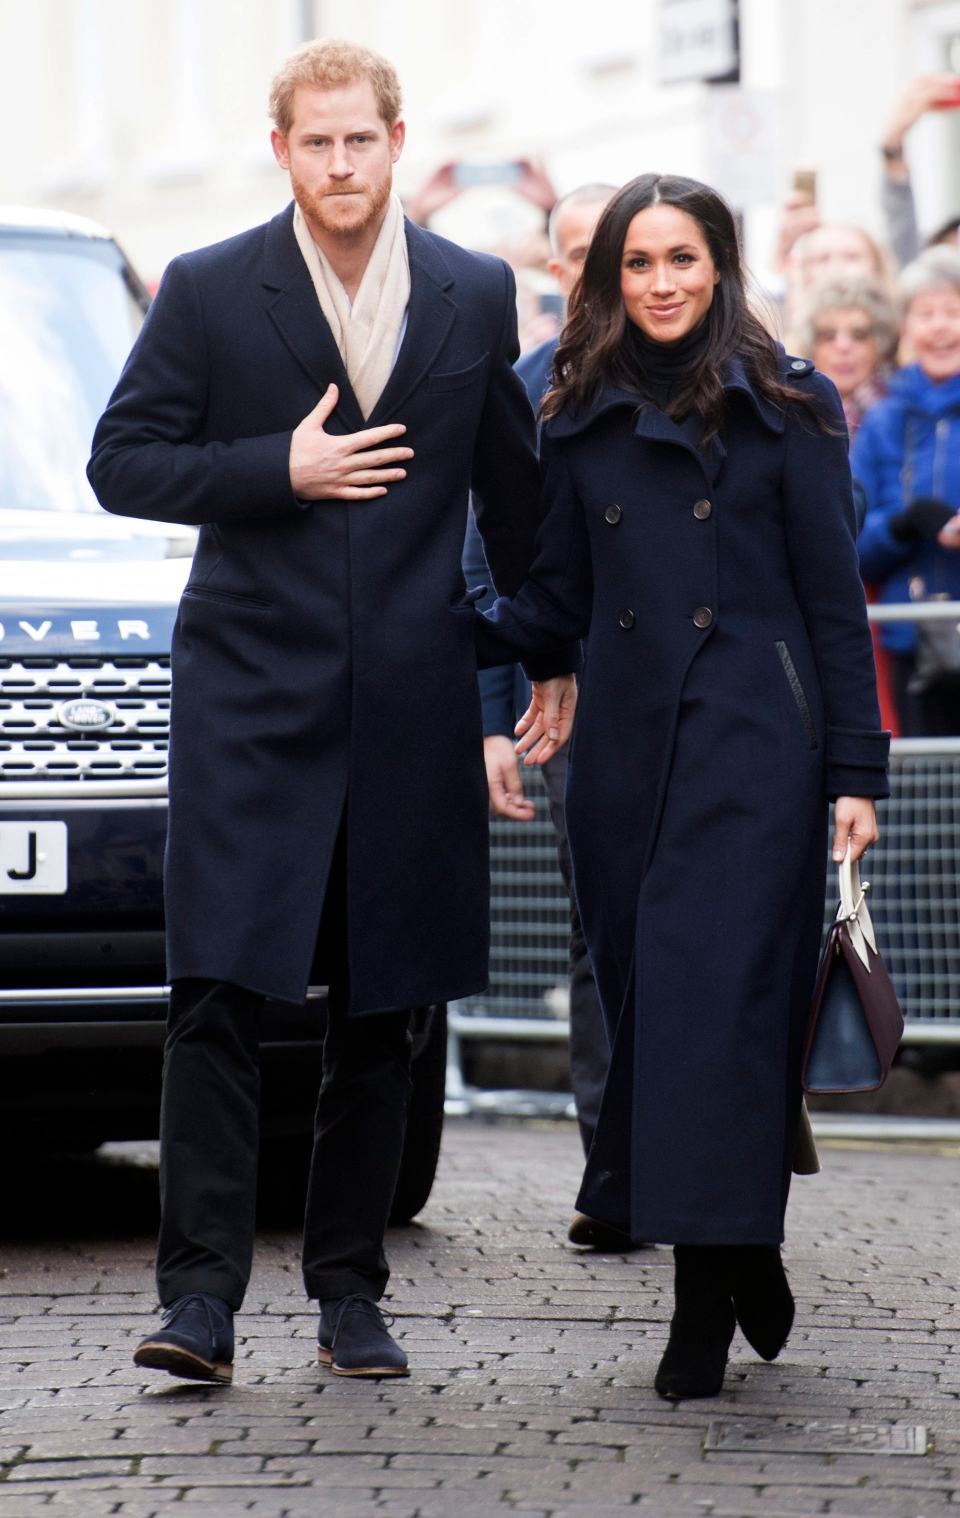 Prince Harry and his fiancee Meghan Markle, on their first official public engagement in Nottingham, England, Friday Dec. 1, 2017. (Jeremy Selwyn / Pool Photo via AP)